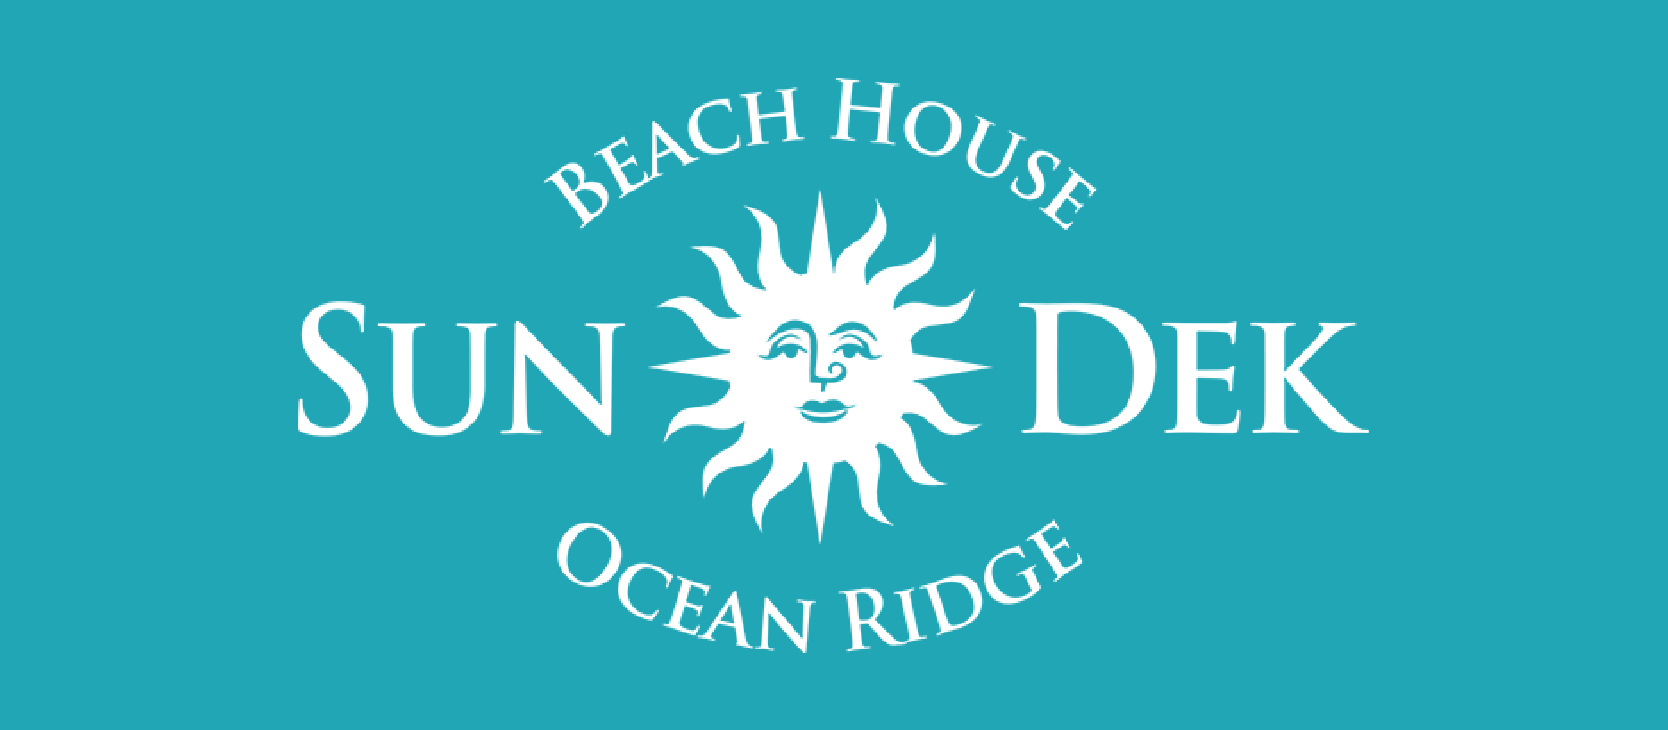 Sun Dek Beach House